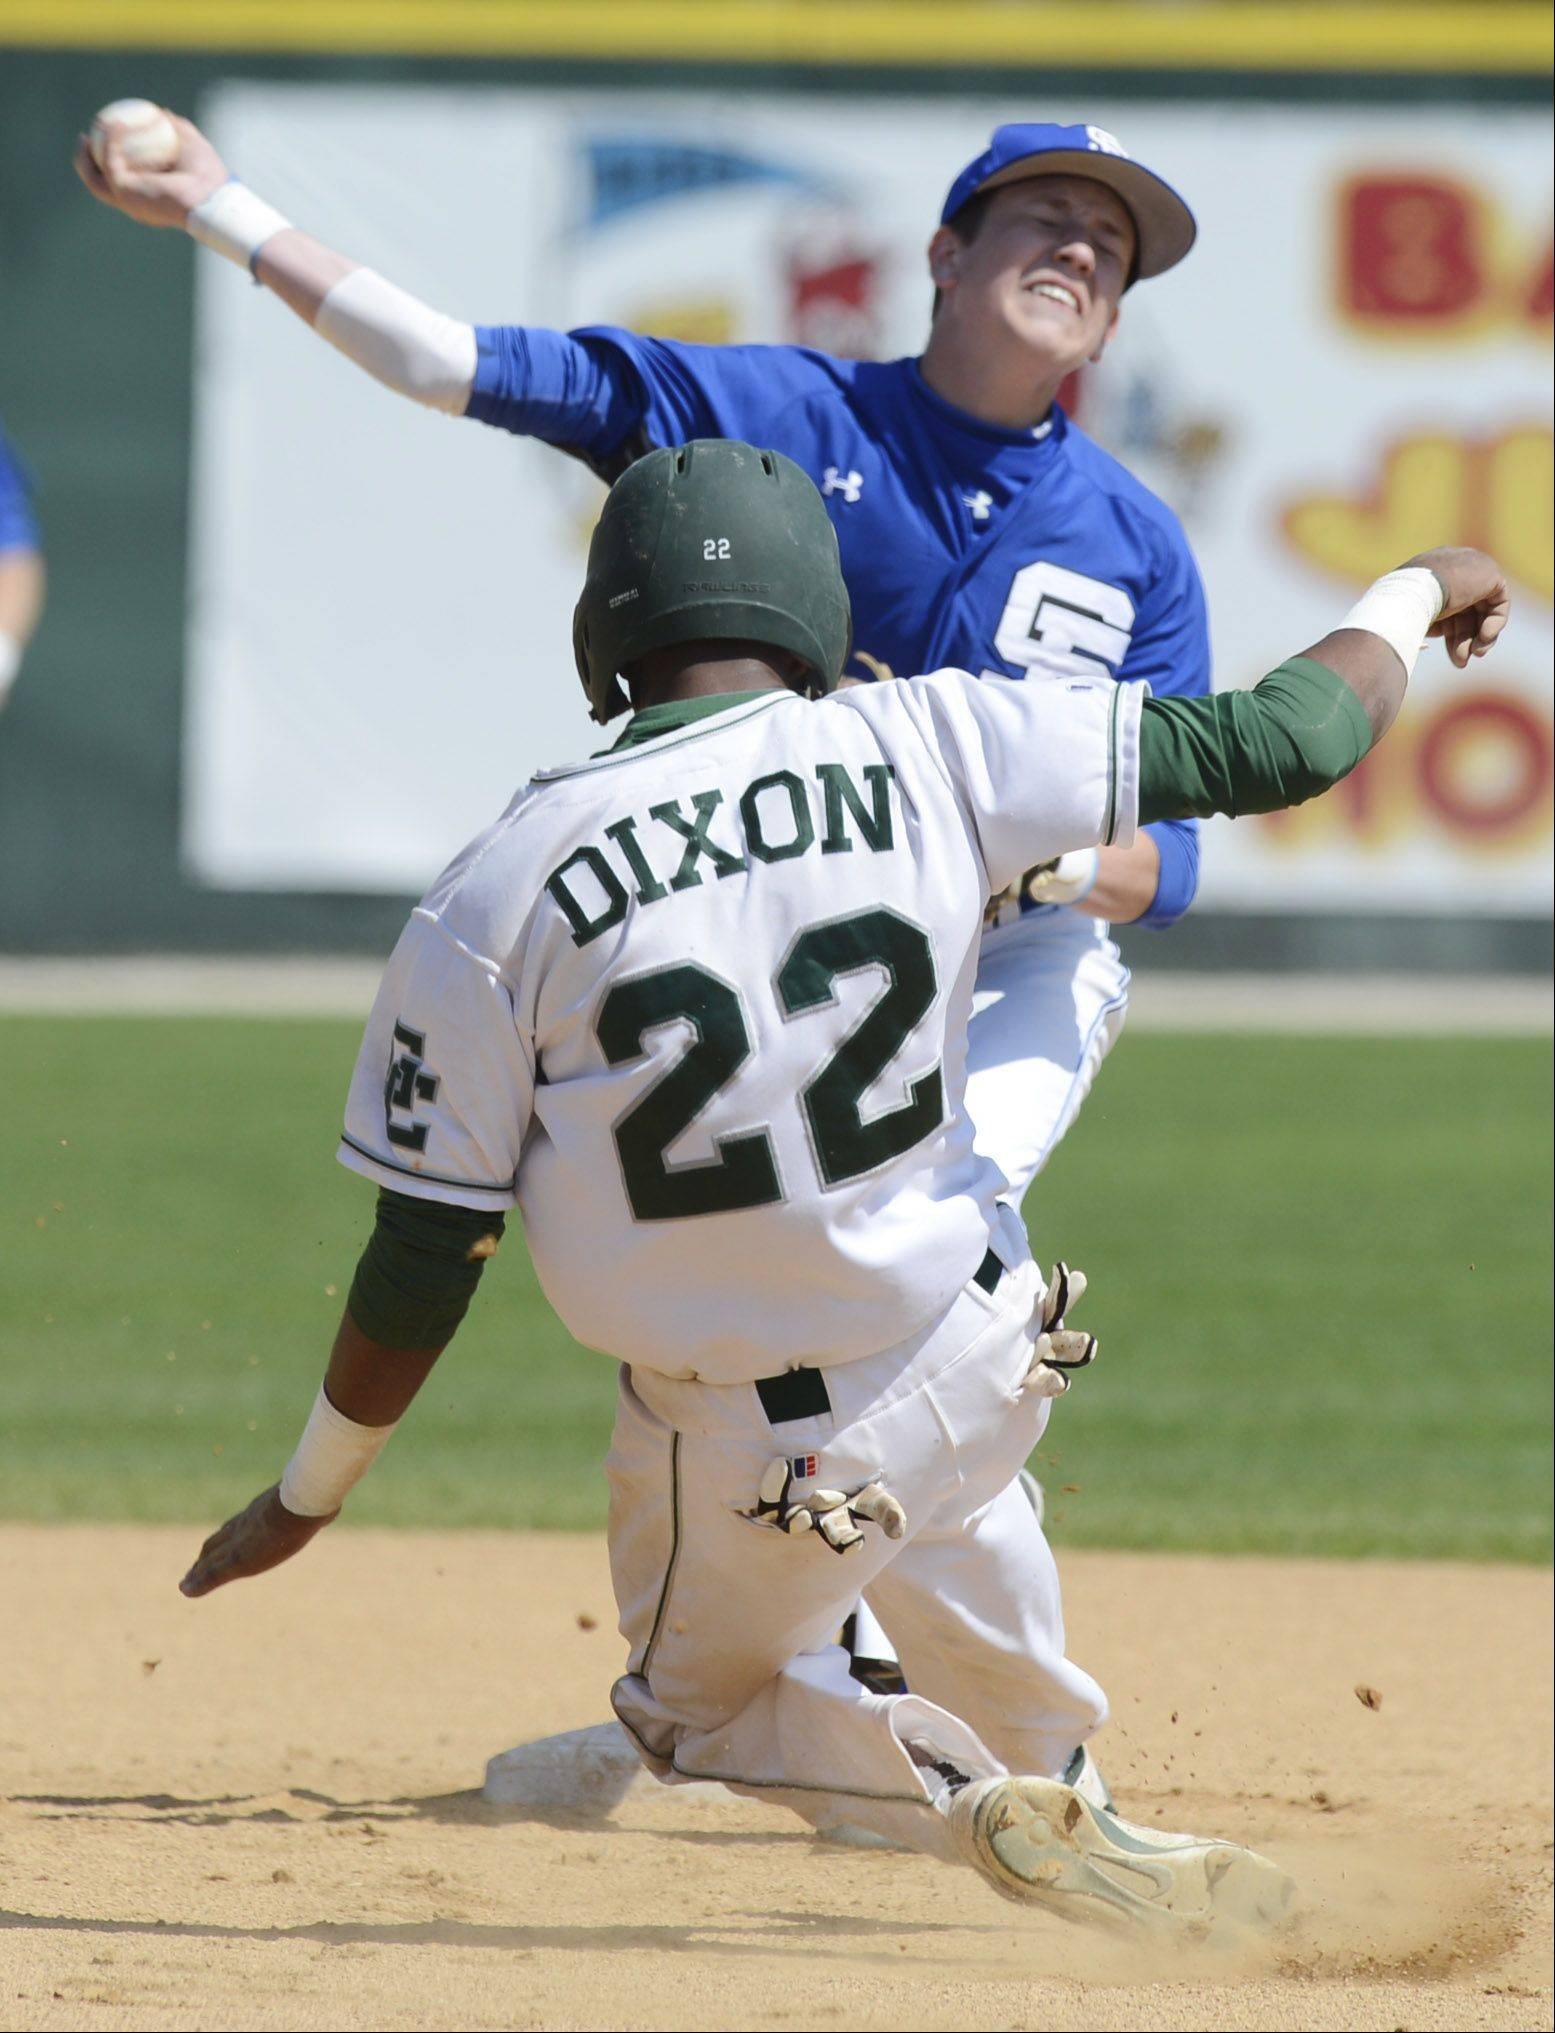 St. Francis second baseman Jack Ciombor makes the throw as Grayslake Central's Sterling Dixon slides into second on a second-inning double play during the Class 3A state baseball tournament at Silver Cross Field in Joliet Friday.